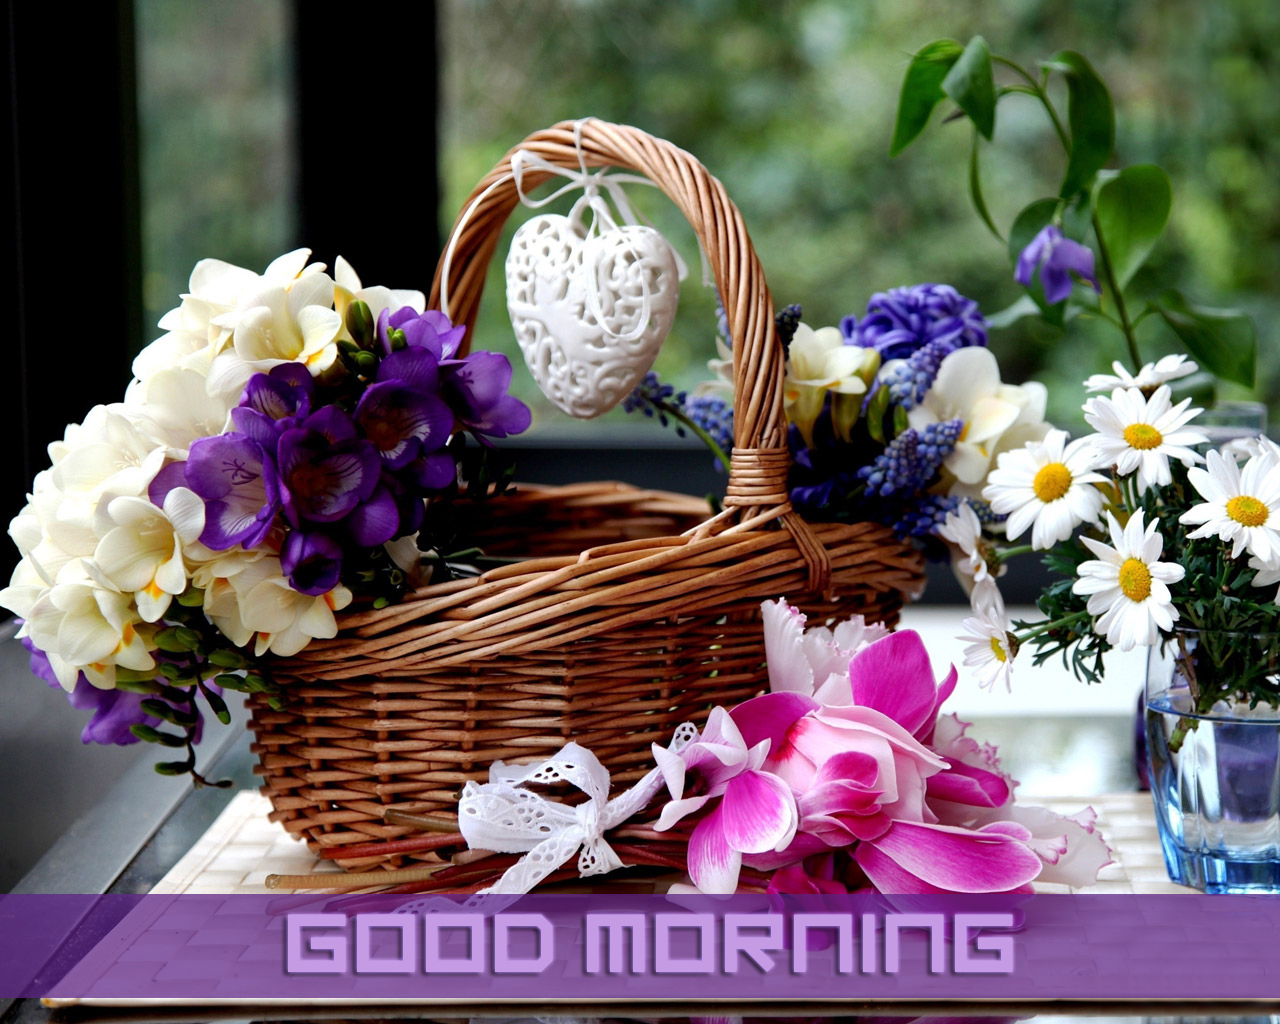 Wallpaper download good - Good Morning Mobile Wallpaper Free Download Beautiful Collection